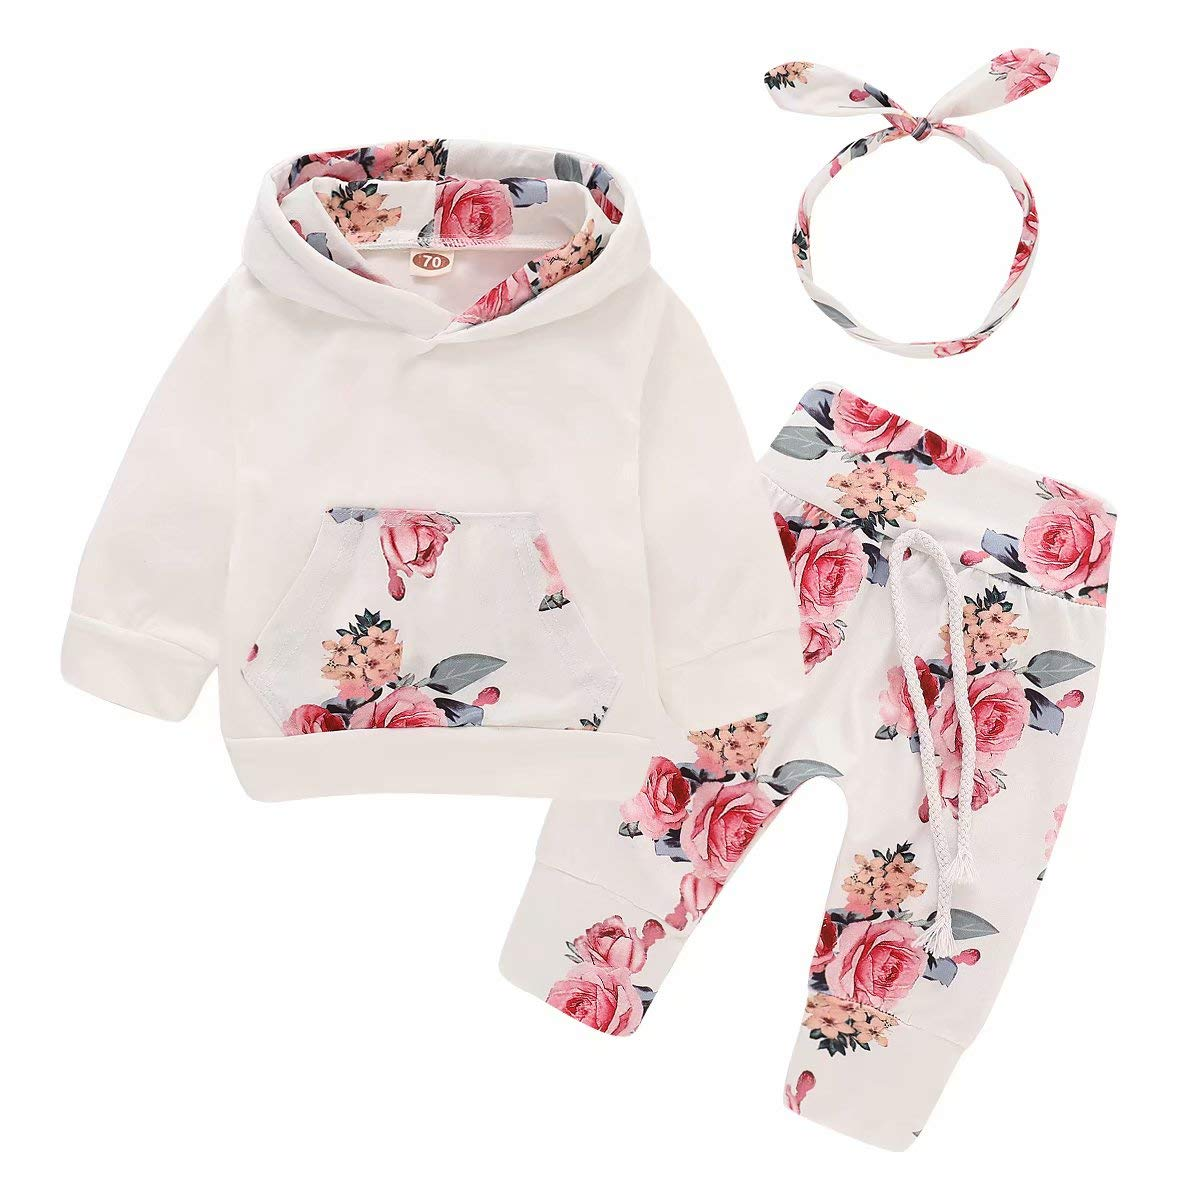 CETEPY Baby Girl Clothes Outfits Newborn Infant Long Sleeve Hoodie + Pants + Headbands Size 0-24 Months